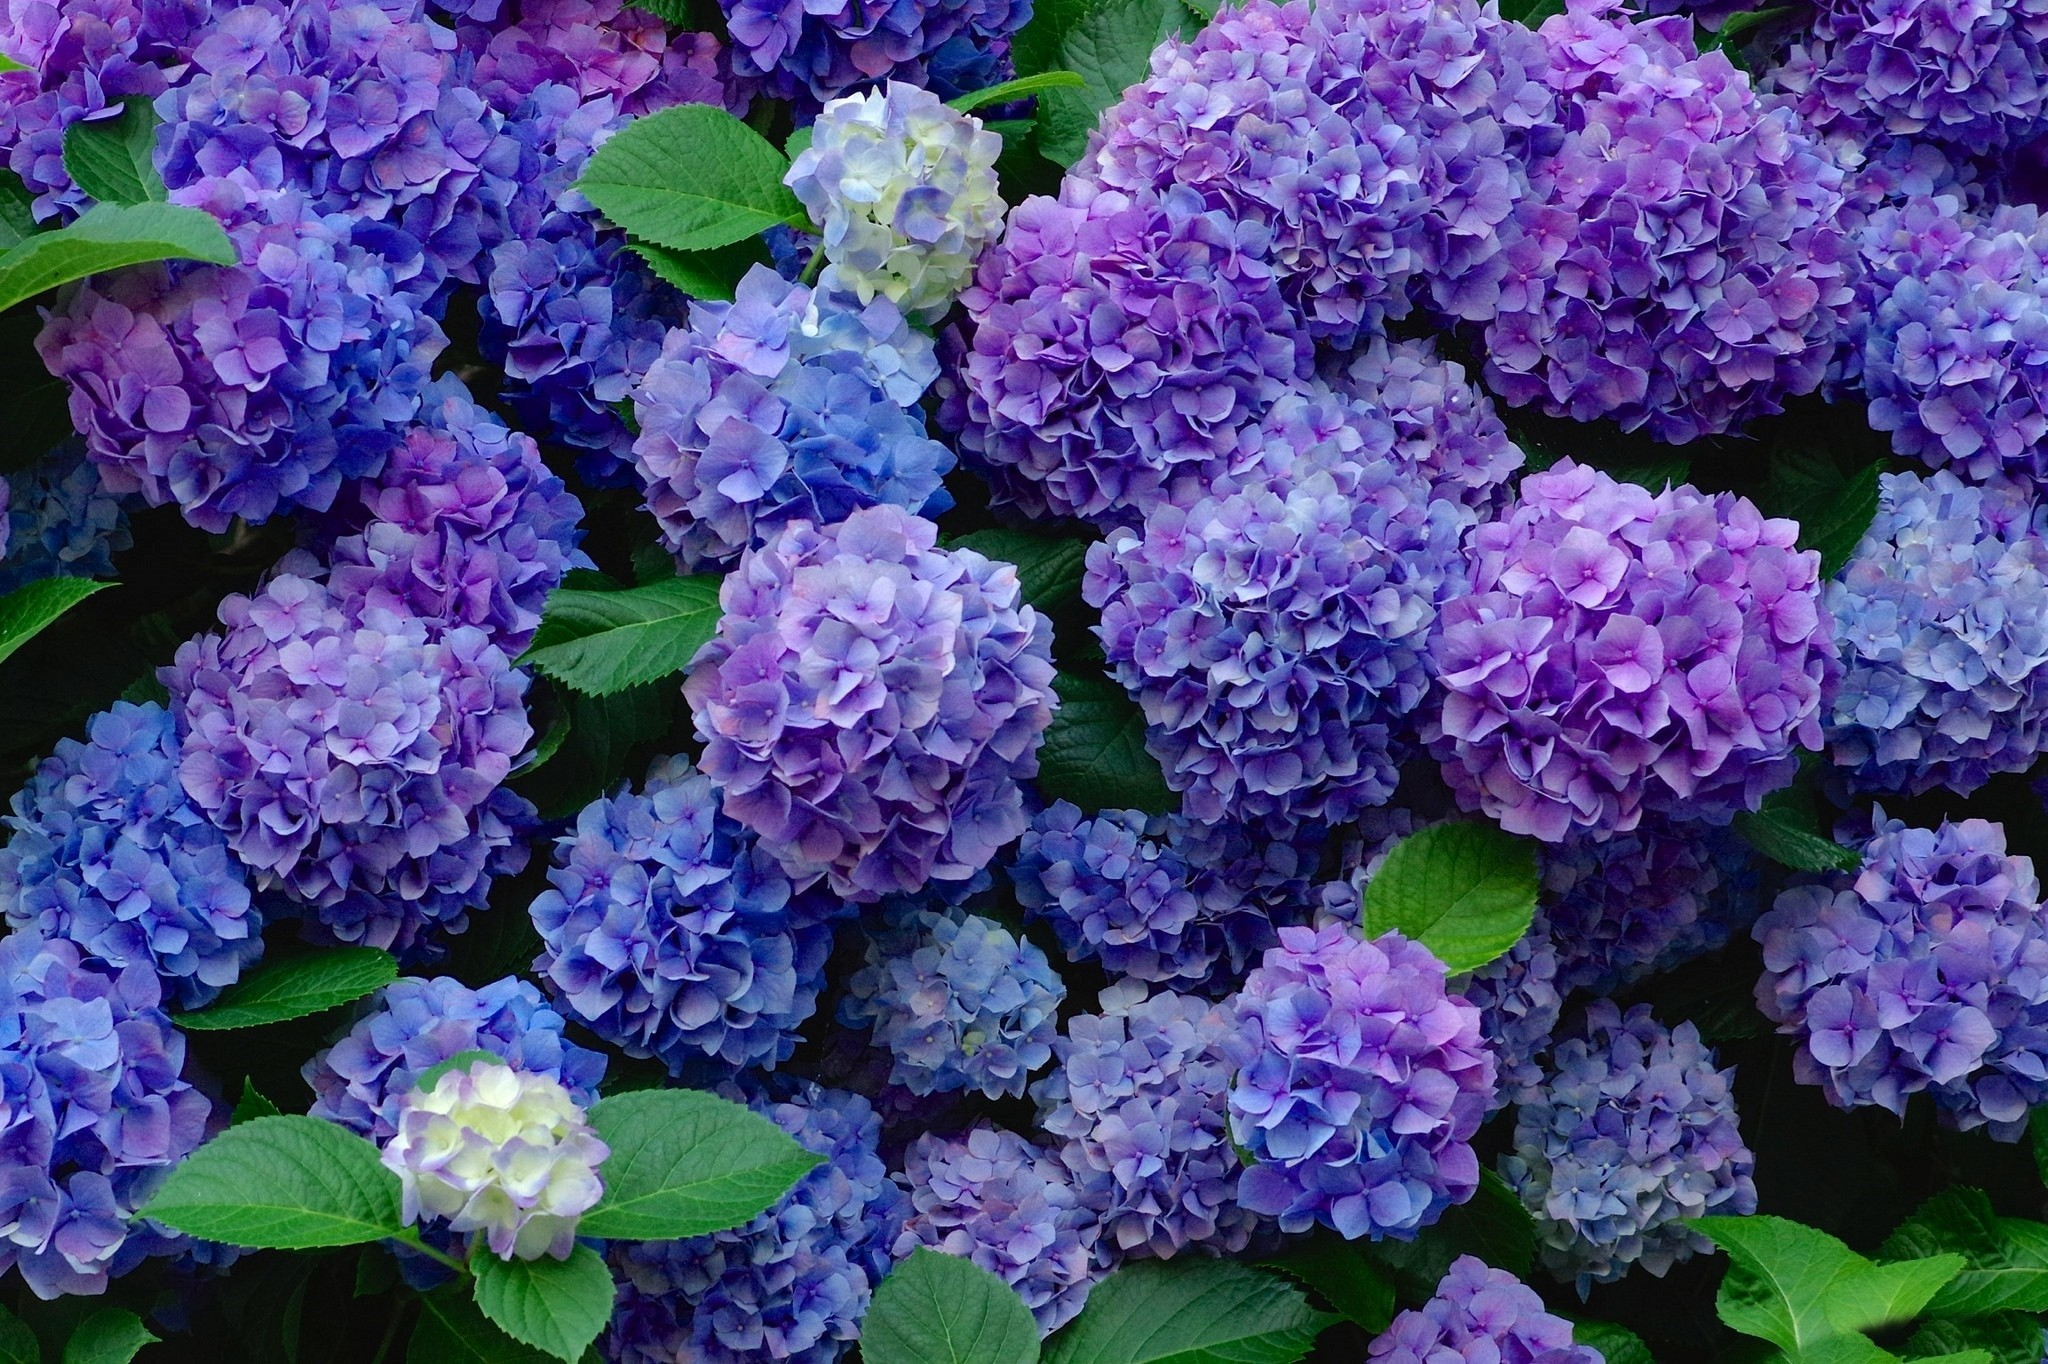 Blue And Purple Hydrangeas Hd Wallpaper Background Image